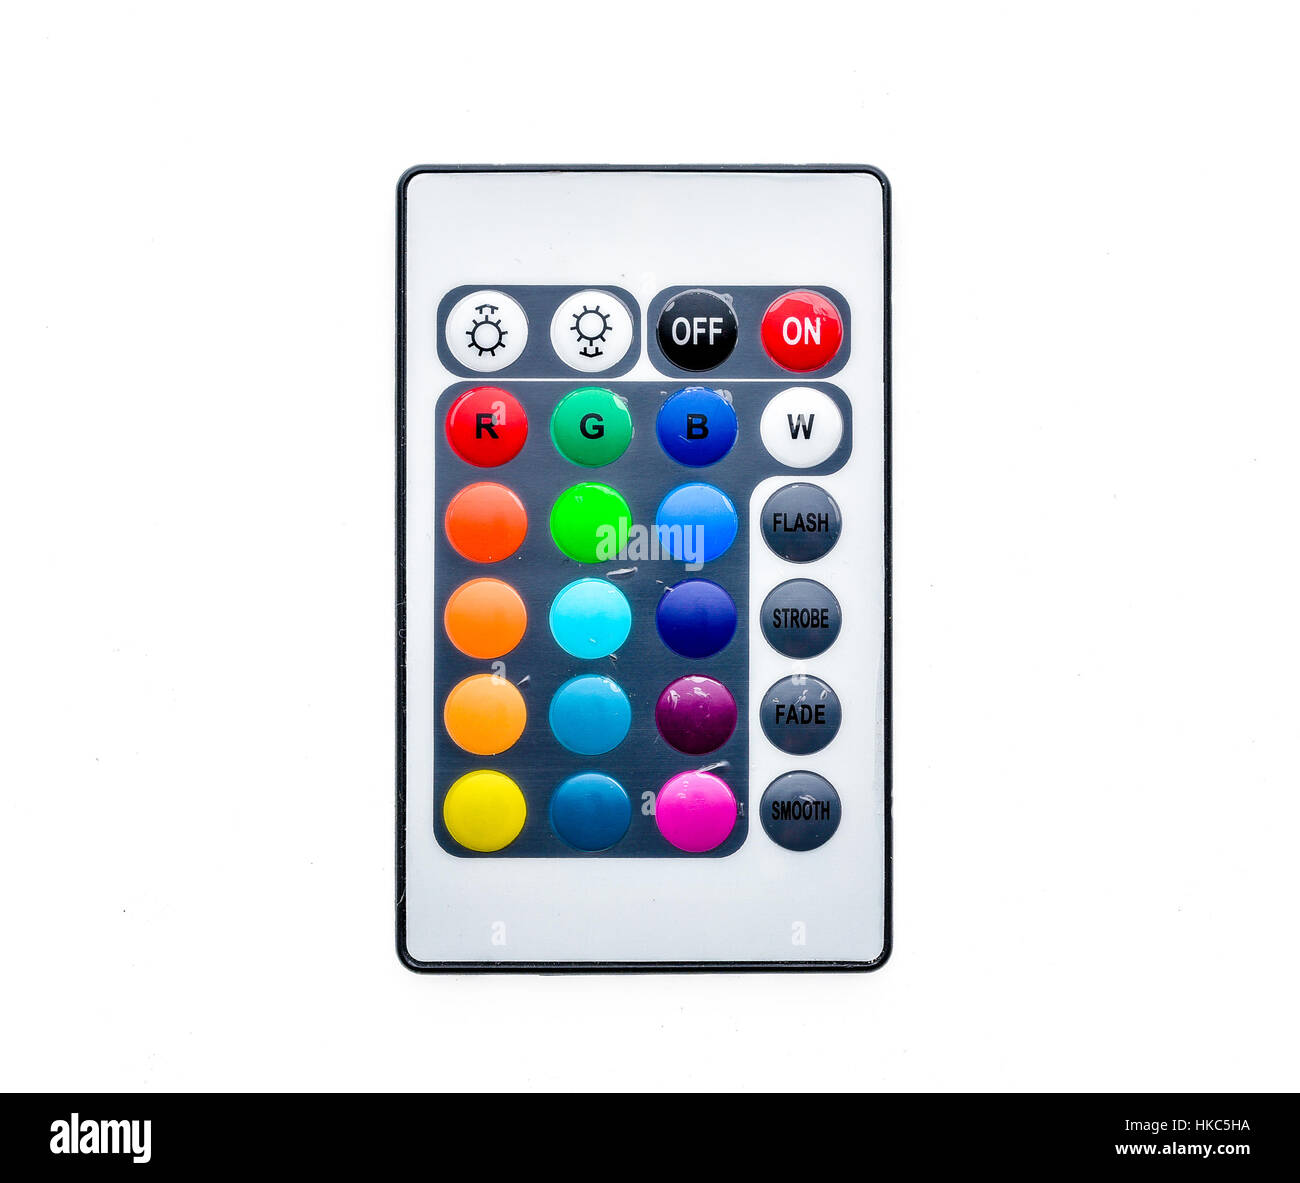 Infrared remote control keyboard for home LED lighting. Isolated on ...